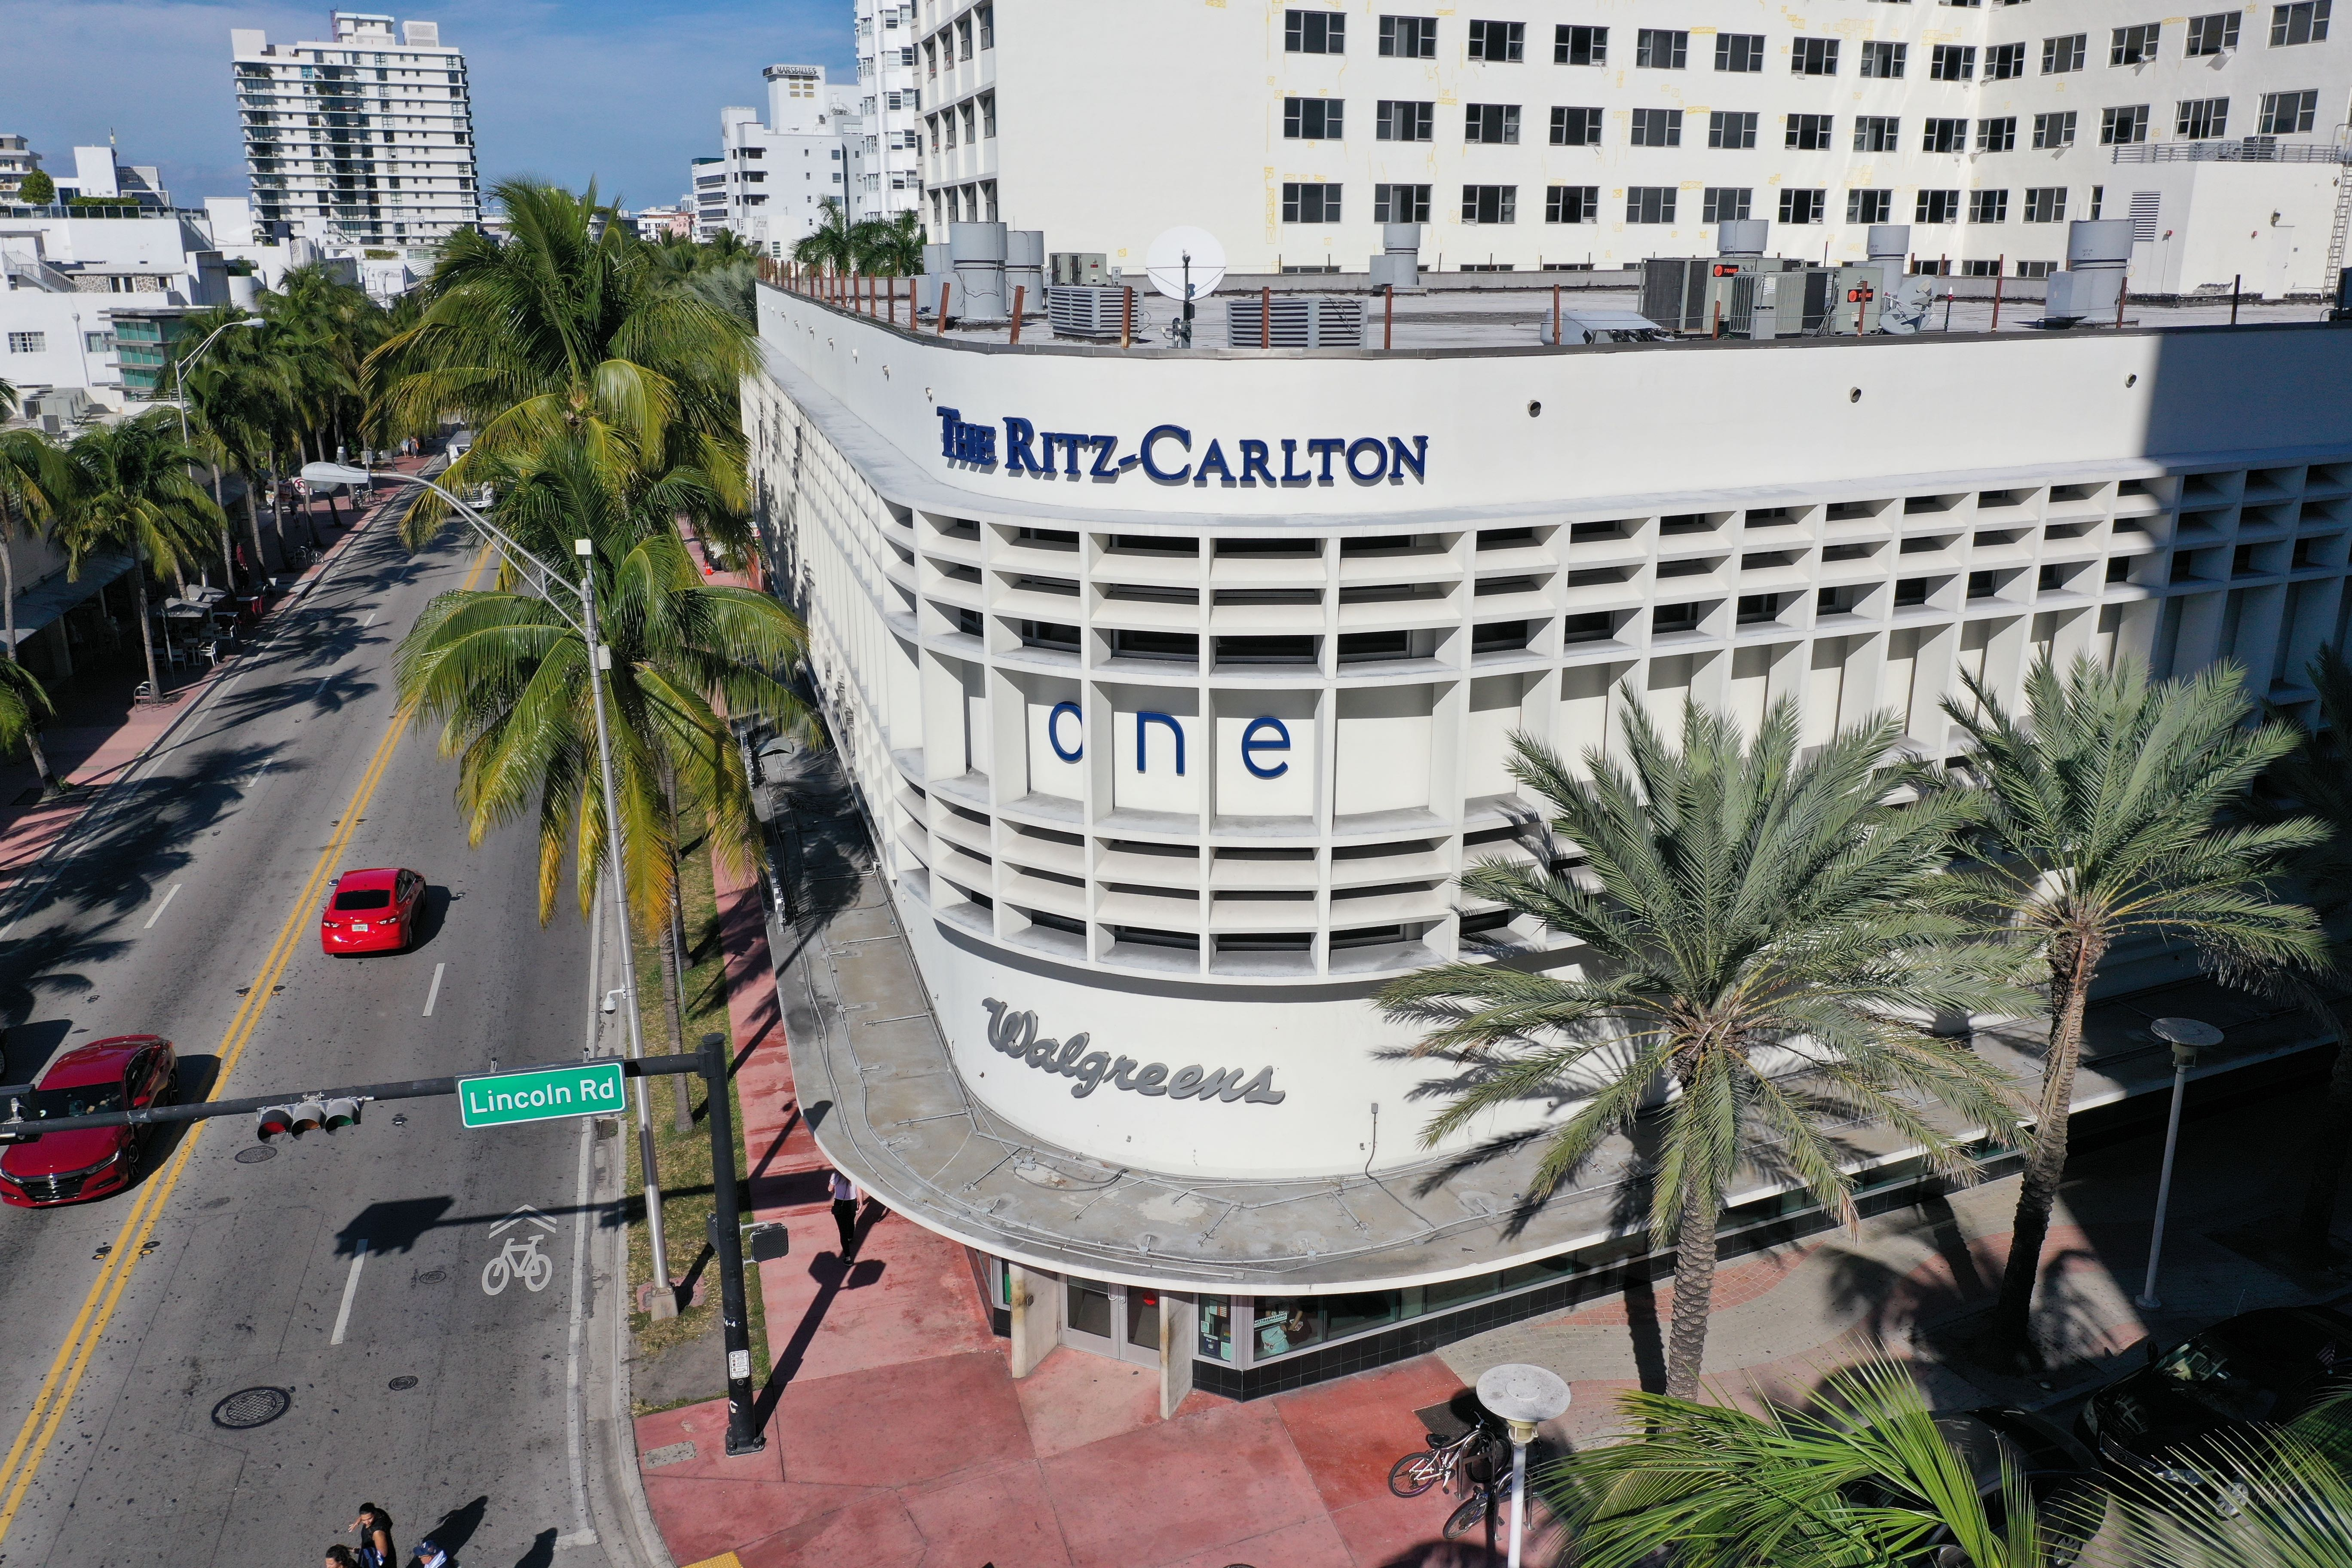 The Walgreens store is underneath the Ritz Carlton at Collins Avenue and Lincoln Road